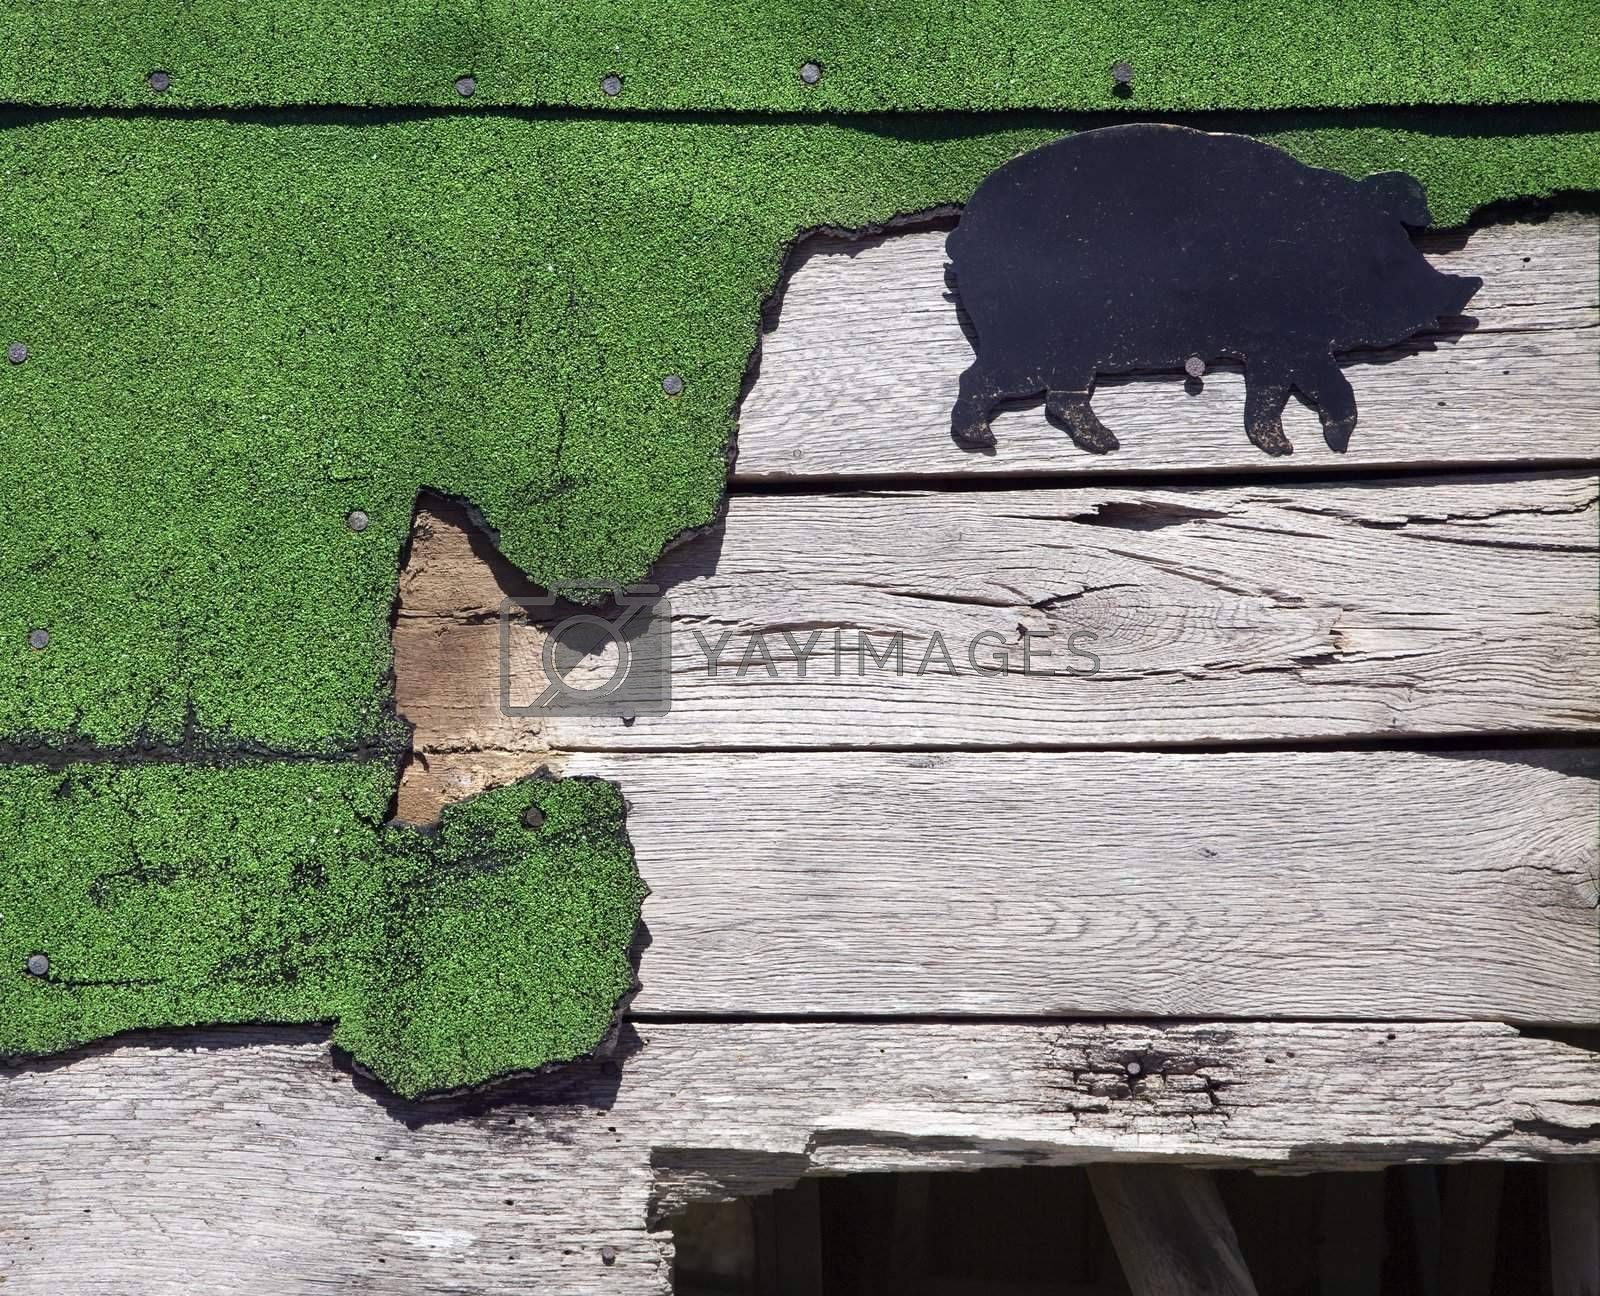 Wooden siding with green turf and pig drawing.